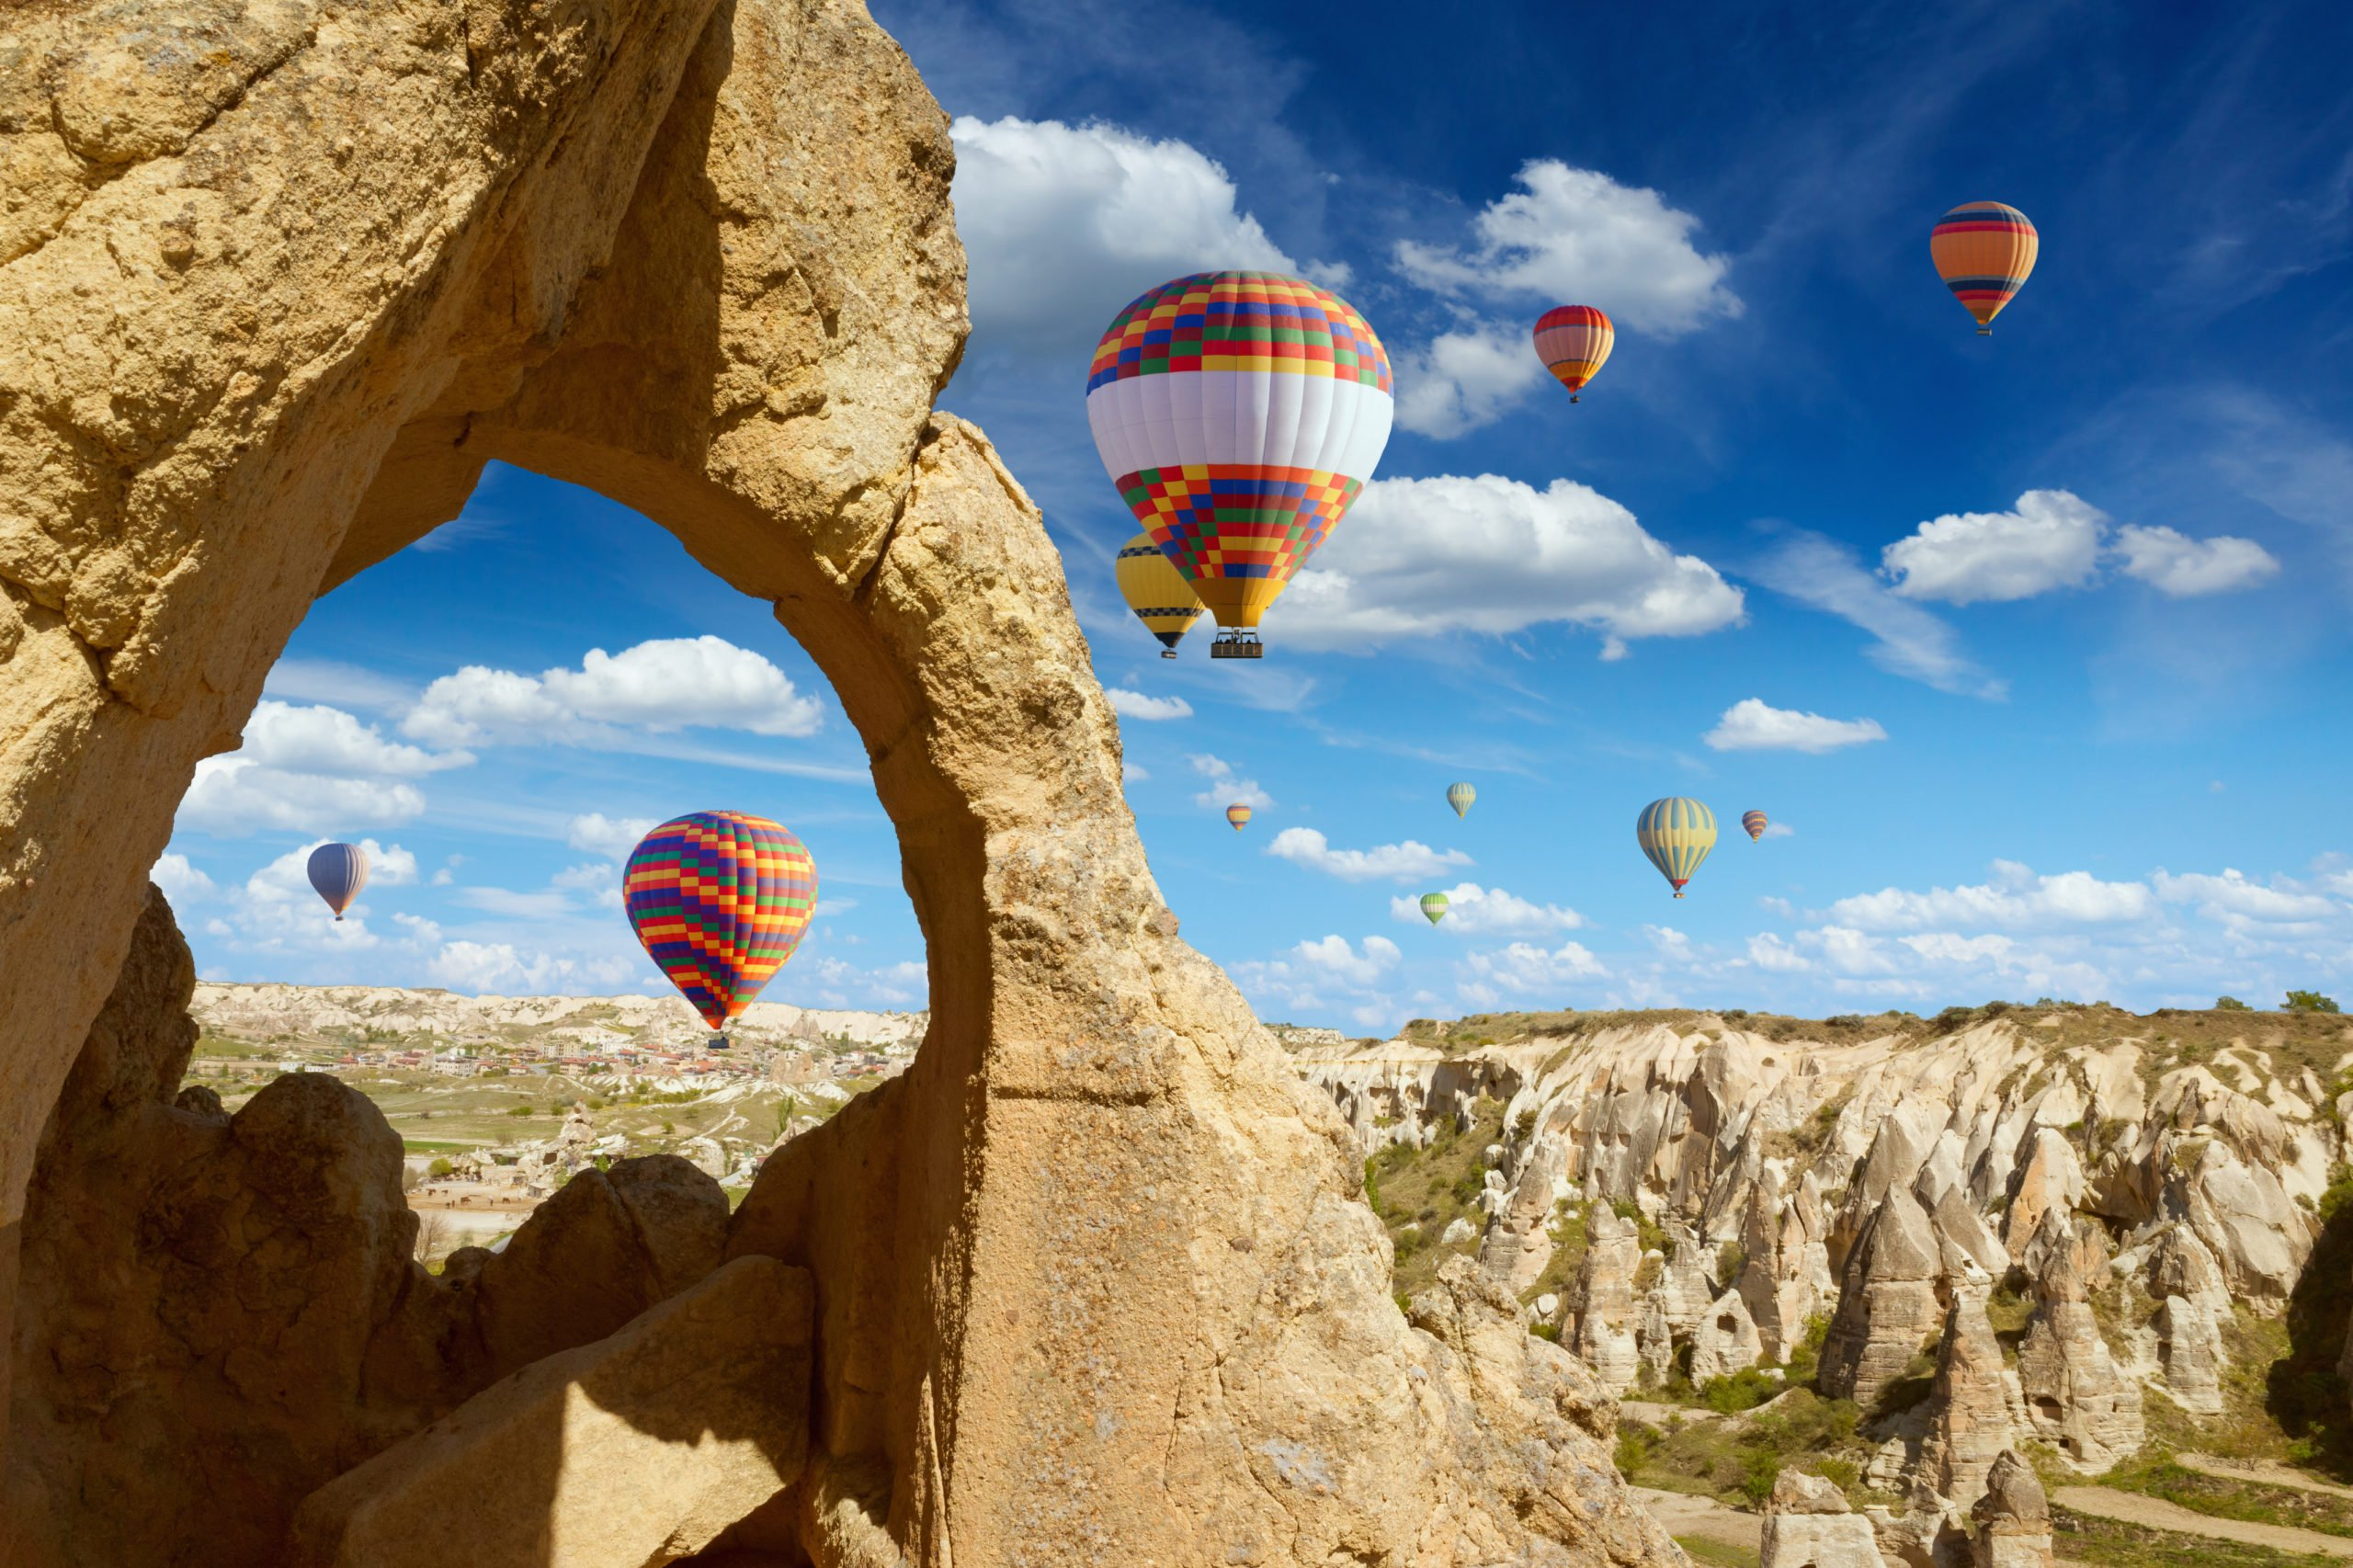 Take A Chance To Discover Cappadocia From Above On The Cappadocia 3 Day Tour From Istanbul